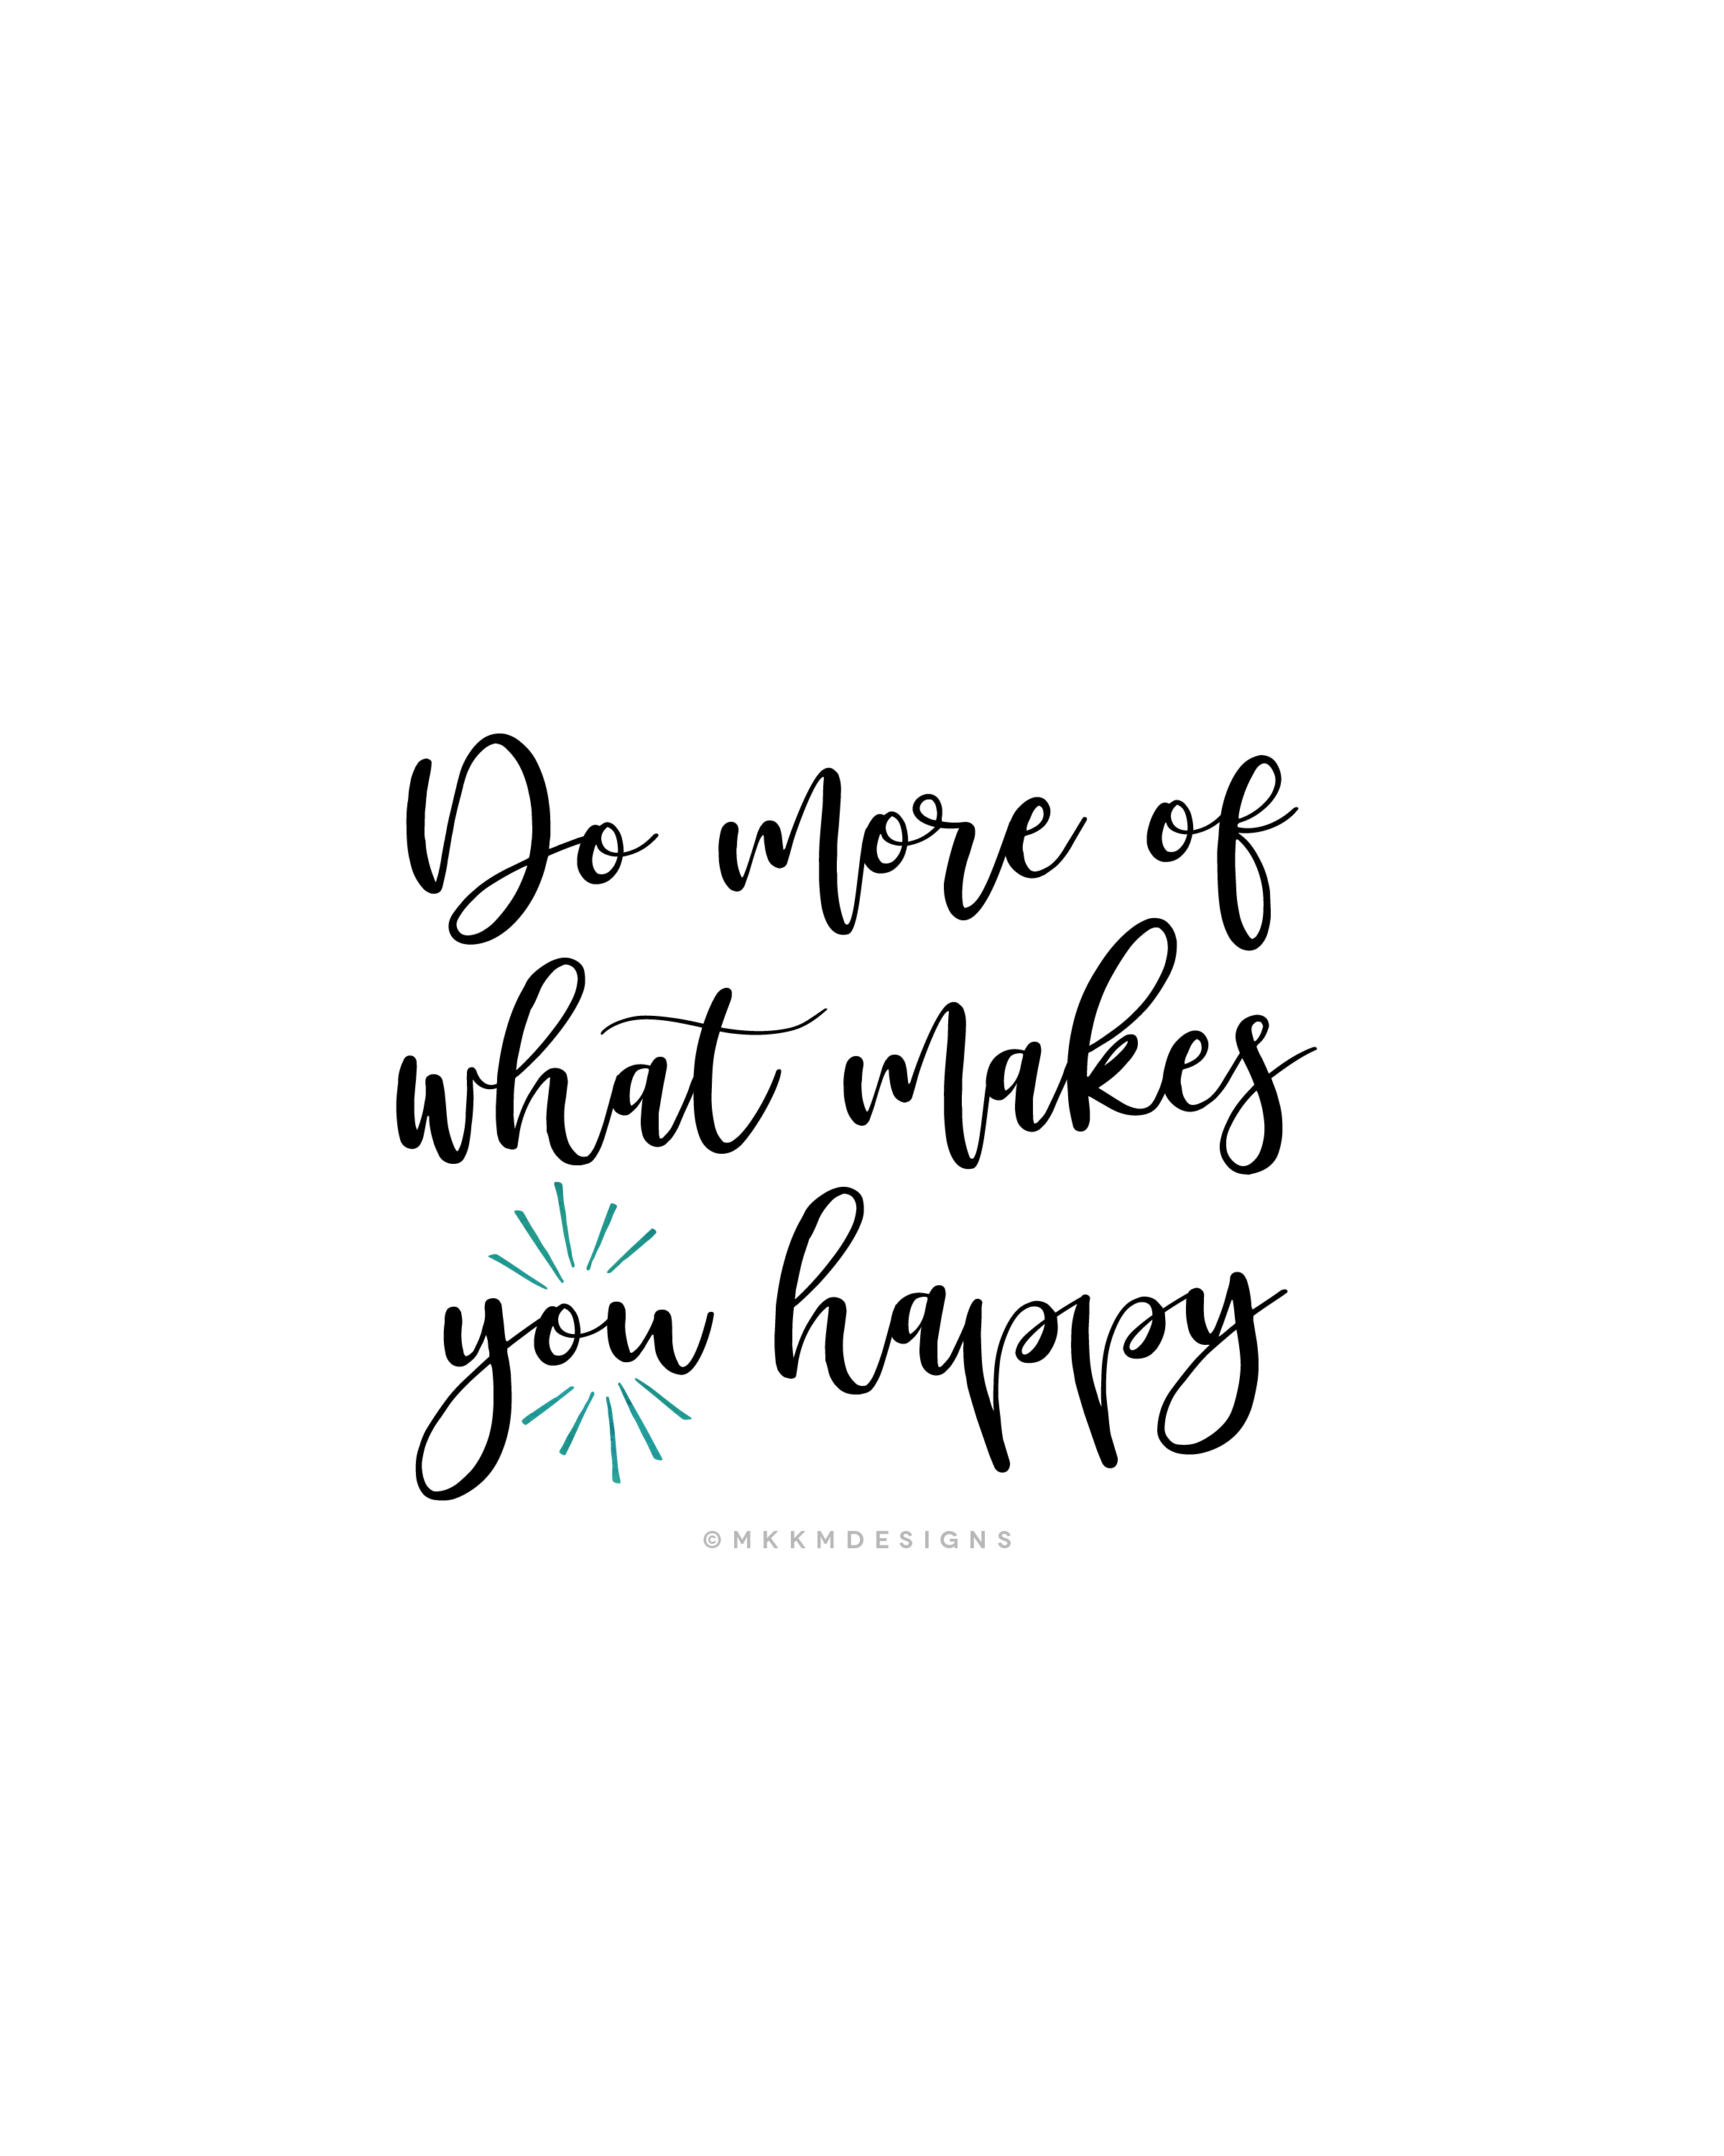 Do more of what makes <you> happy ✦ Quote of the day ✦ girl boss inspo, monday motivation // ✦ mkkmdesigns